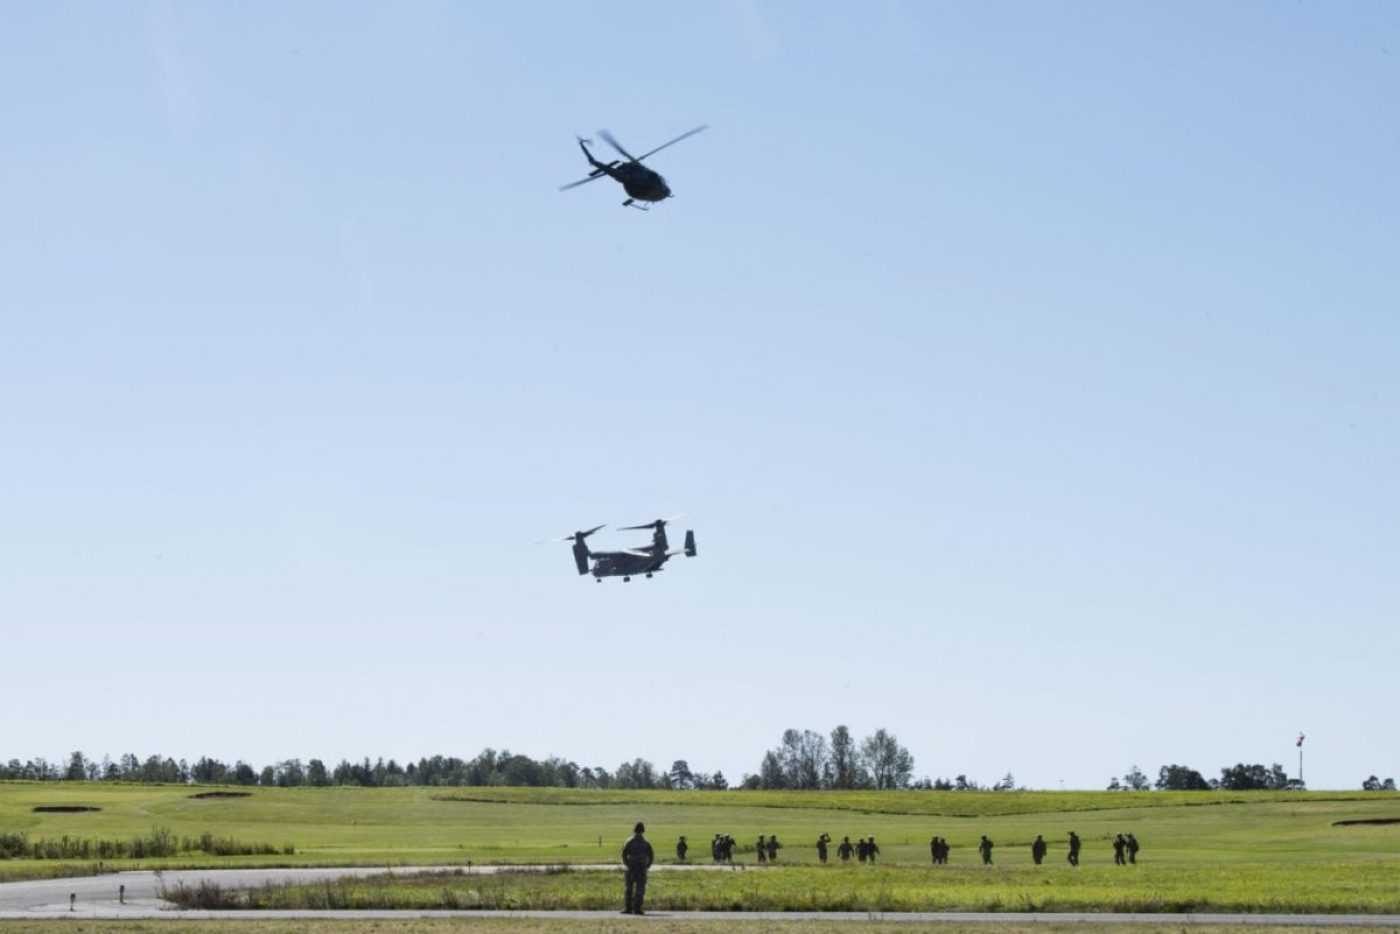 A Royal Norwegian Air Force Bell 412 Helicopter and a CV-22B Osprey, based out of RAF Milden-hall, U.K., hovers over 321st Special Tactics Squadron Airmen after performing fast-rope training at Rygge Air Station, Norway, August 25, 2020. Integration with the Norwegian Air Force allowed the 352d Special Operations Wing to enhance and strengthen bonds with our partner nation and further se-cure the strategic high-north region. The exercise provided training for 352d Special Operations Wing members on capabilities such as personnel recovery, forward area refueling point, aerial refueling, mari-time craft delivery system, and fast rope training. (U.S. Air Force photo by Staff Sgt. Michael Wash-burn)